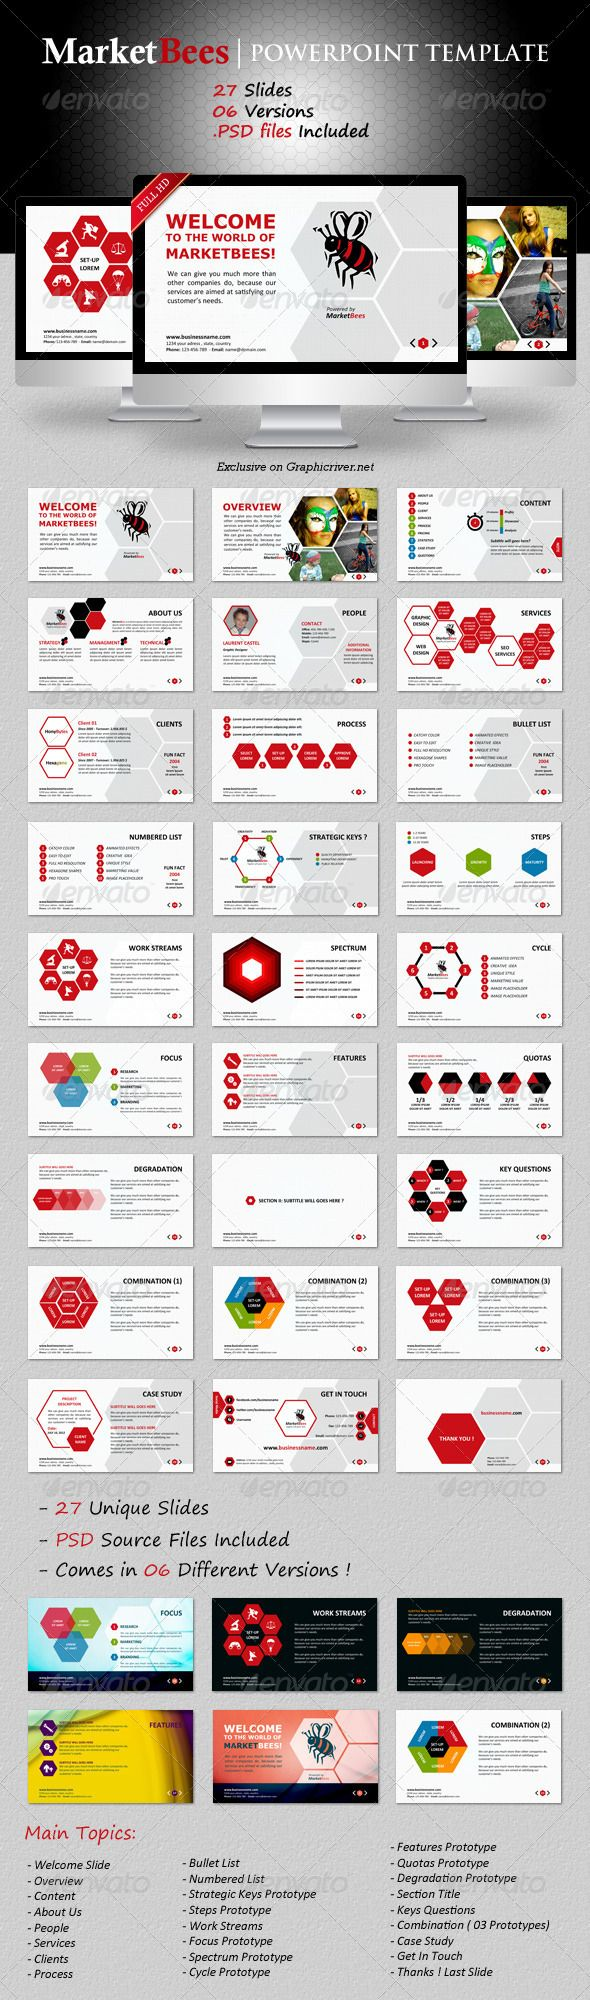 Best 25 business powerpoint templates ideas on pinterest marketbees powerpoint template business powerpoint toneelgroepblik Images